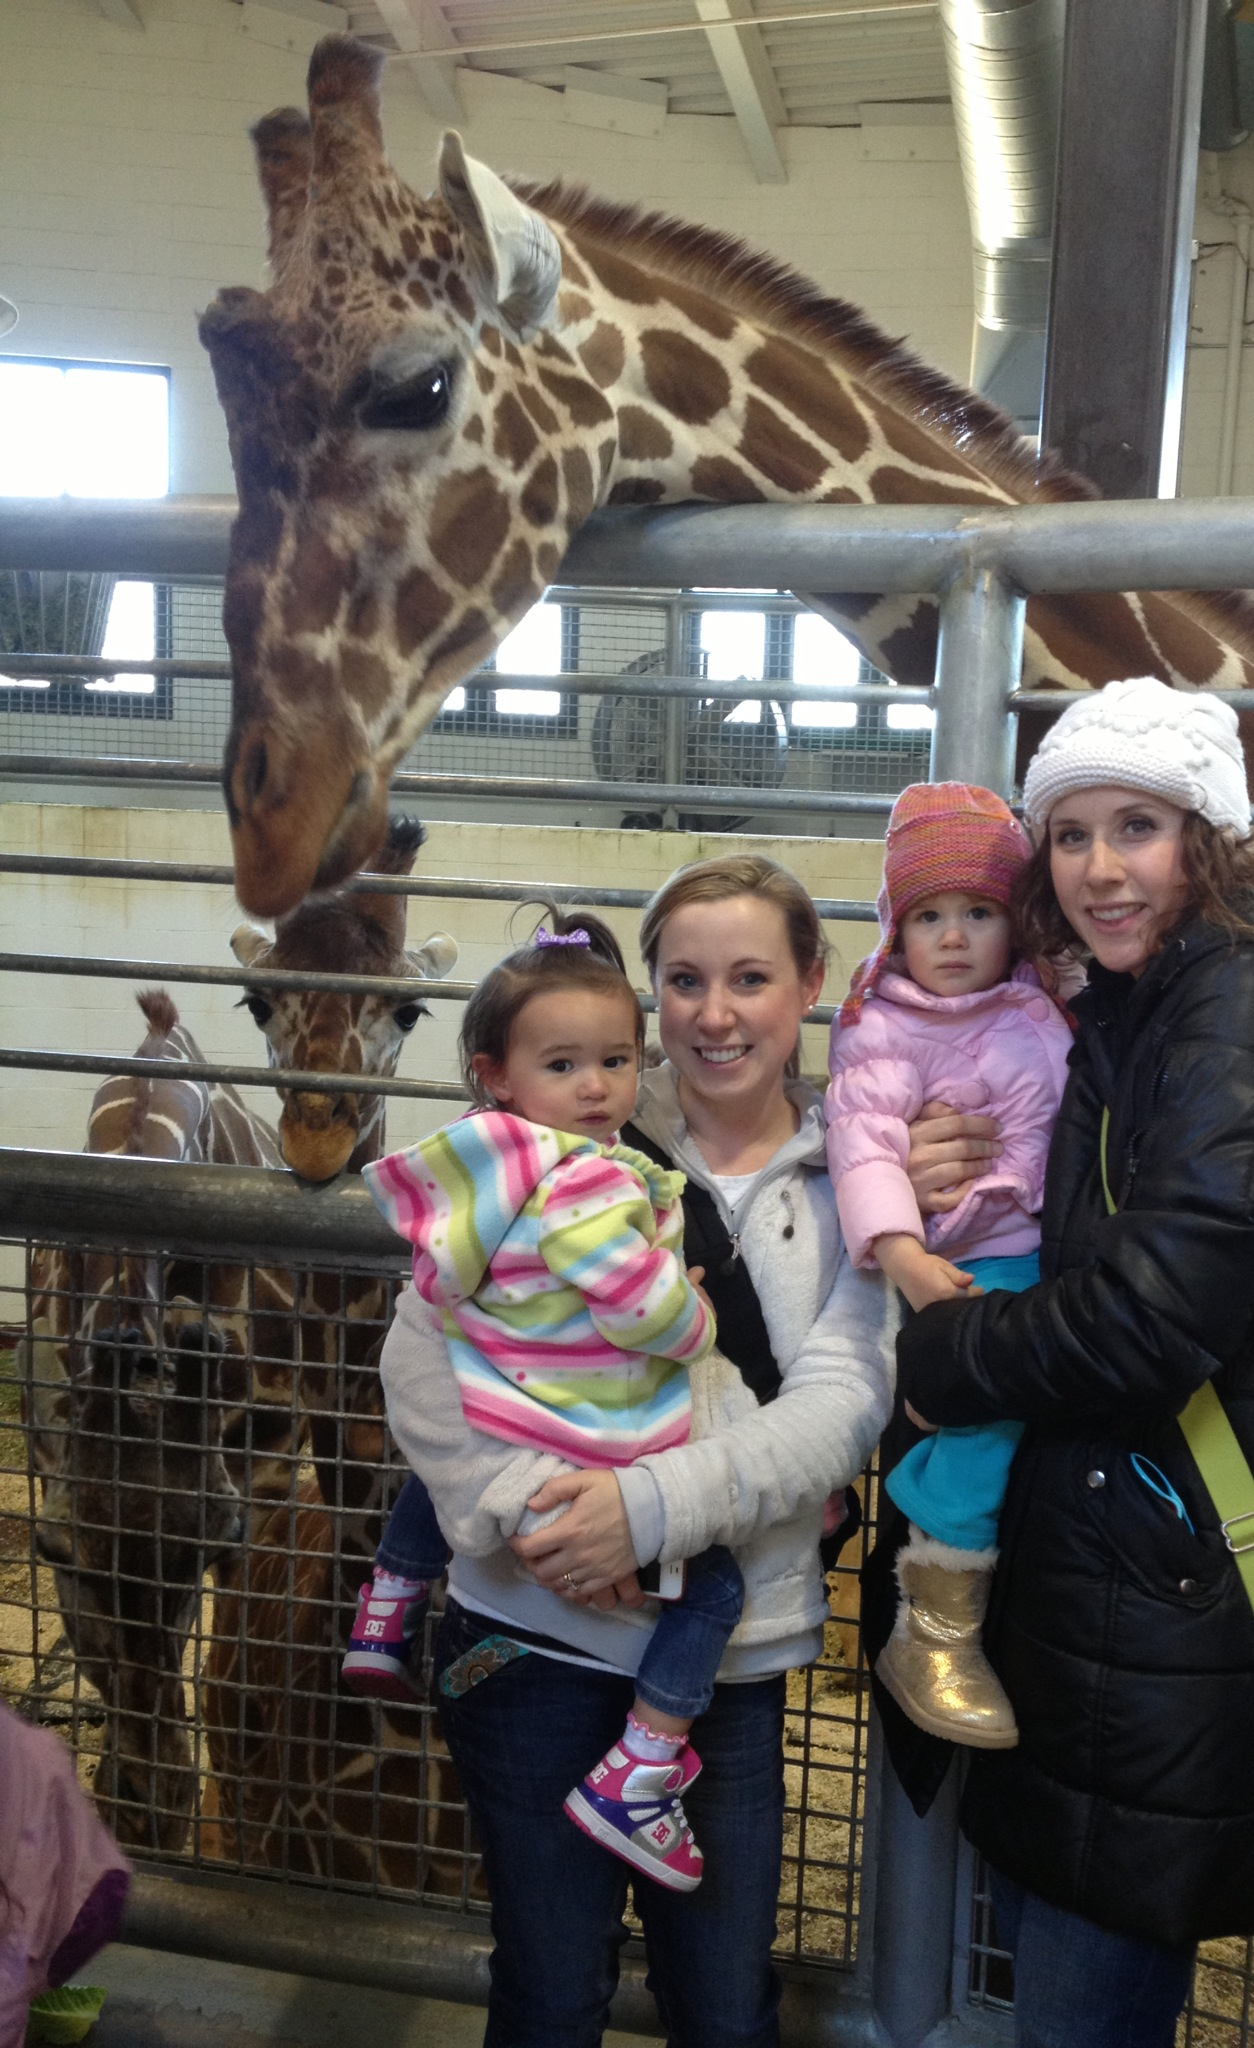 hanging out in the giraffe barn. 3 mamas, 3 babies!